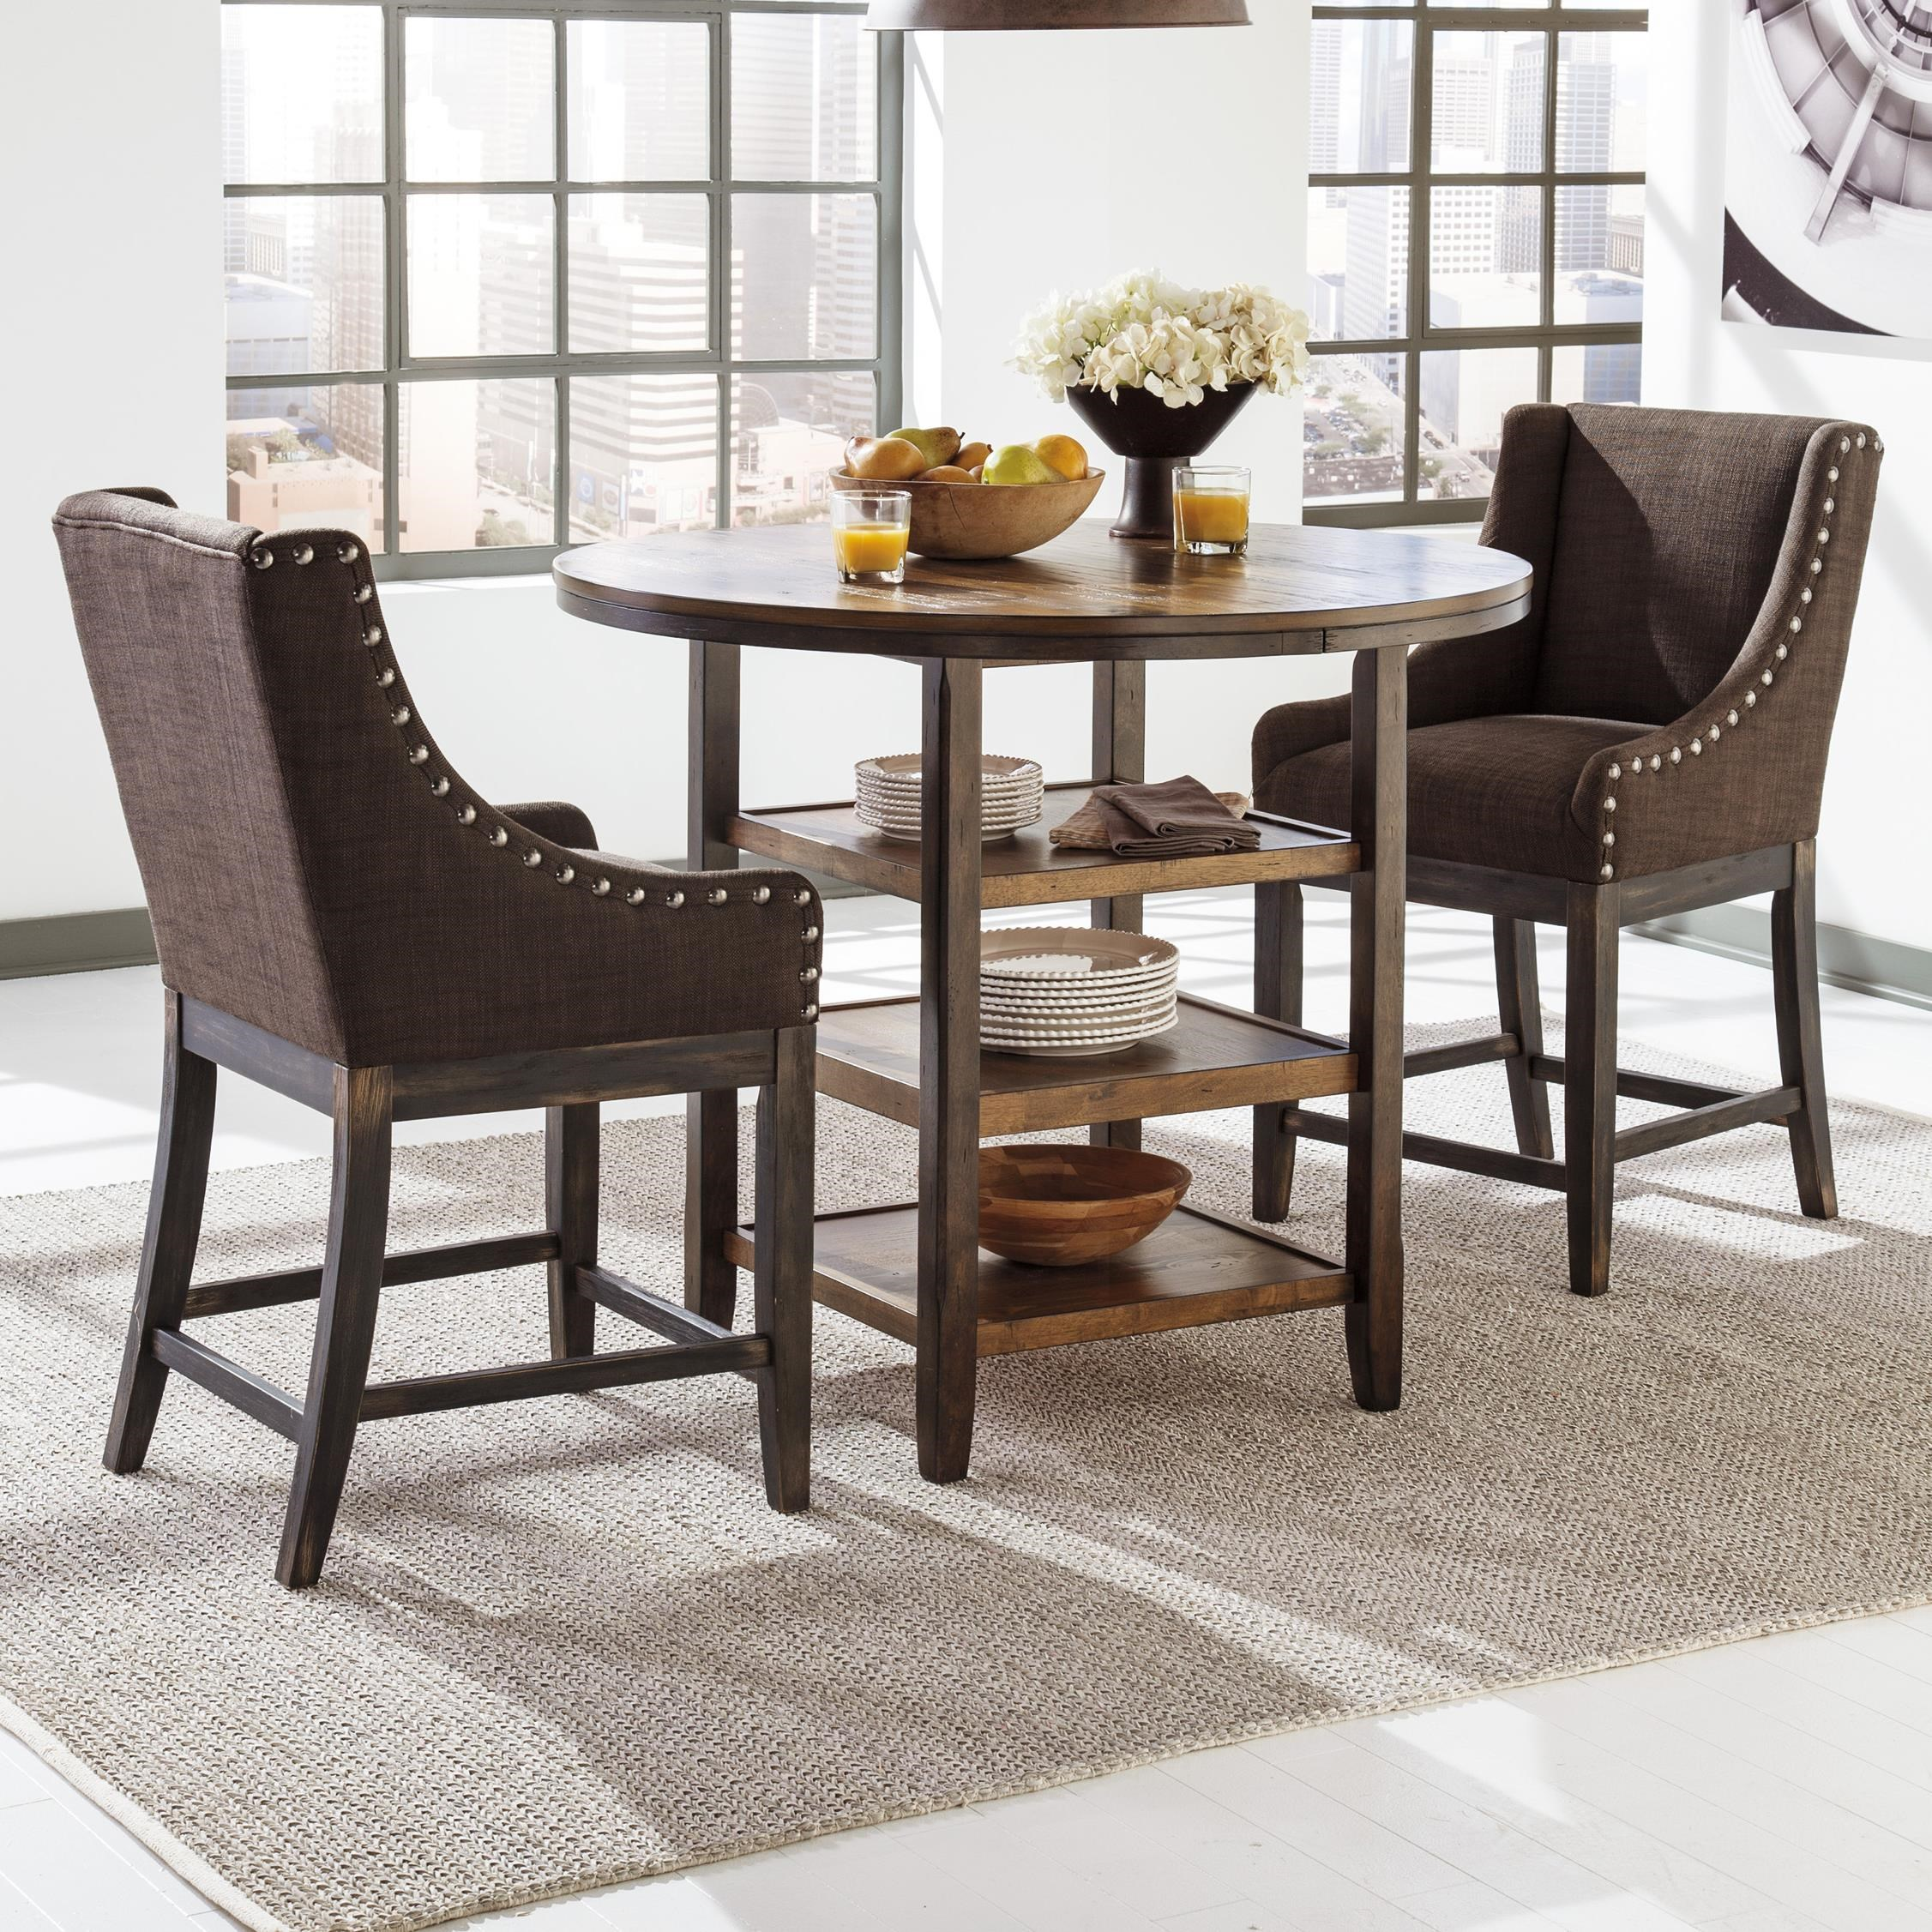 Signature Design by Ashley Moriann 3-Piece Counter Table Set with Brown Sloped Arm Barstools & Signature Design by Ashley Moriann 3-Piece Counter Table Set with ...